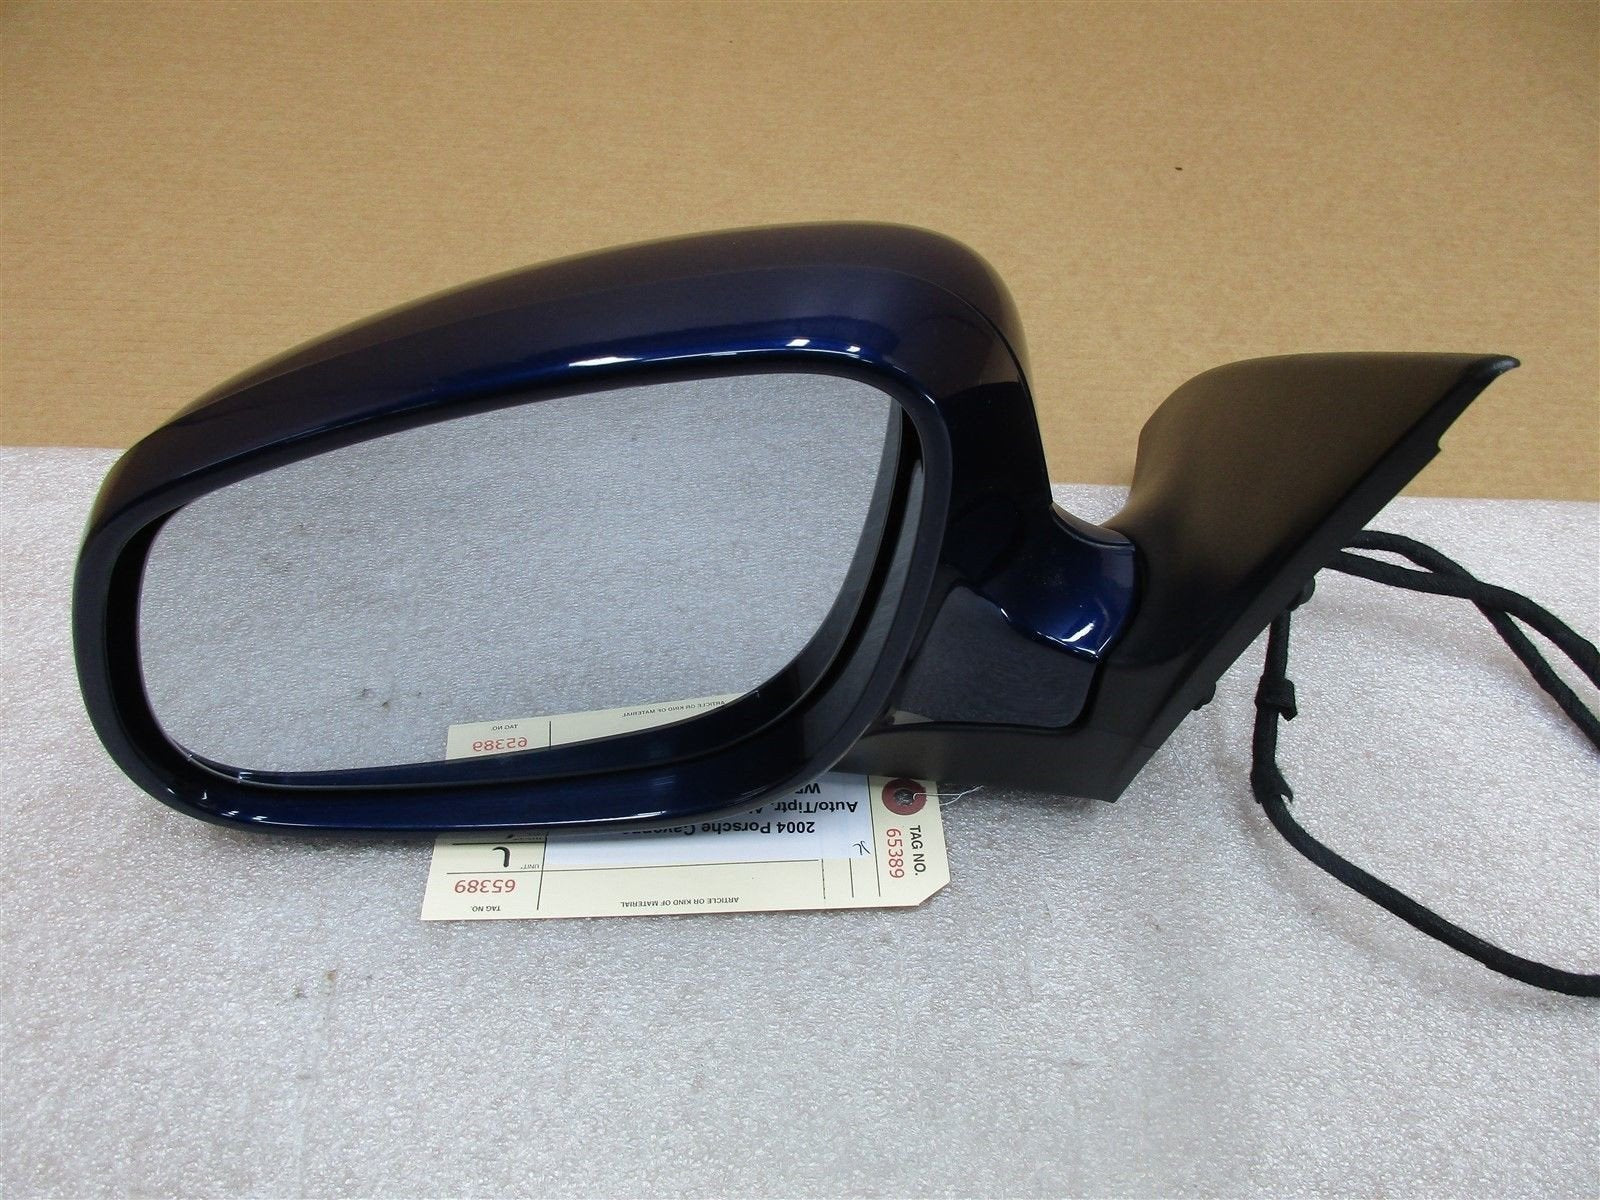 04 Cayenne AWD Porsche 955 L EXTERIOR REAR VIEW MIRROR HOUSING Blue 76,569